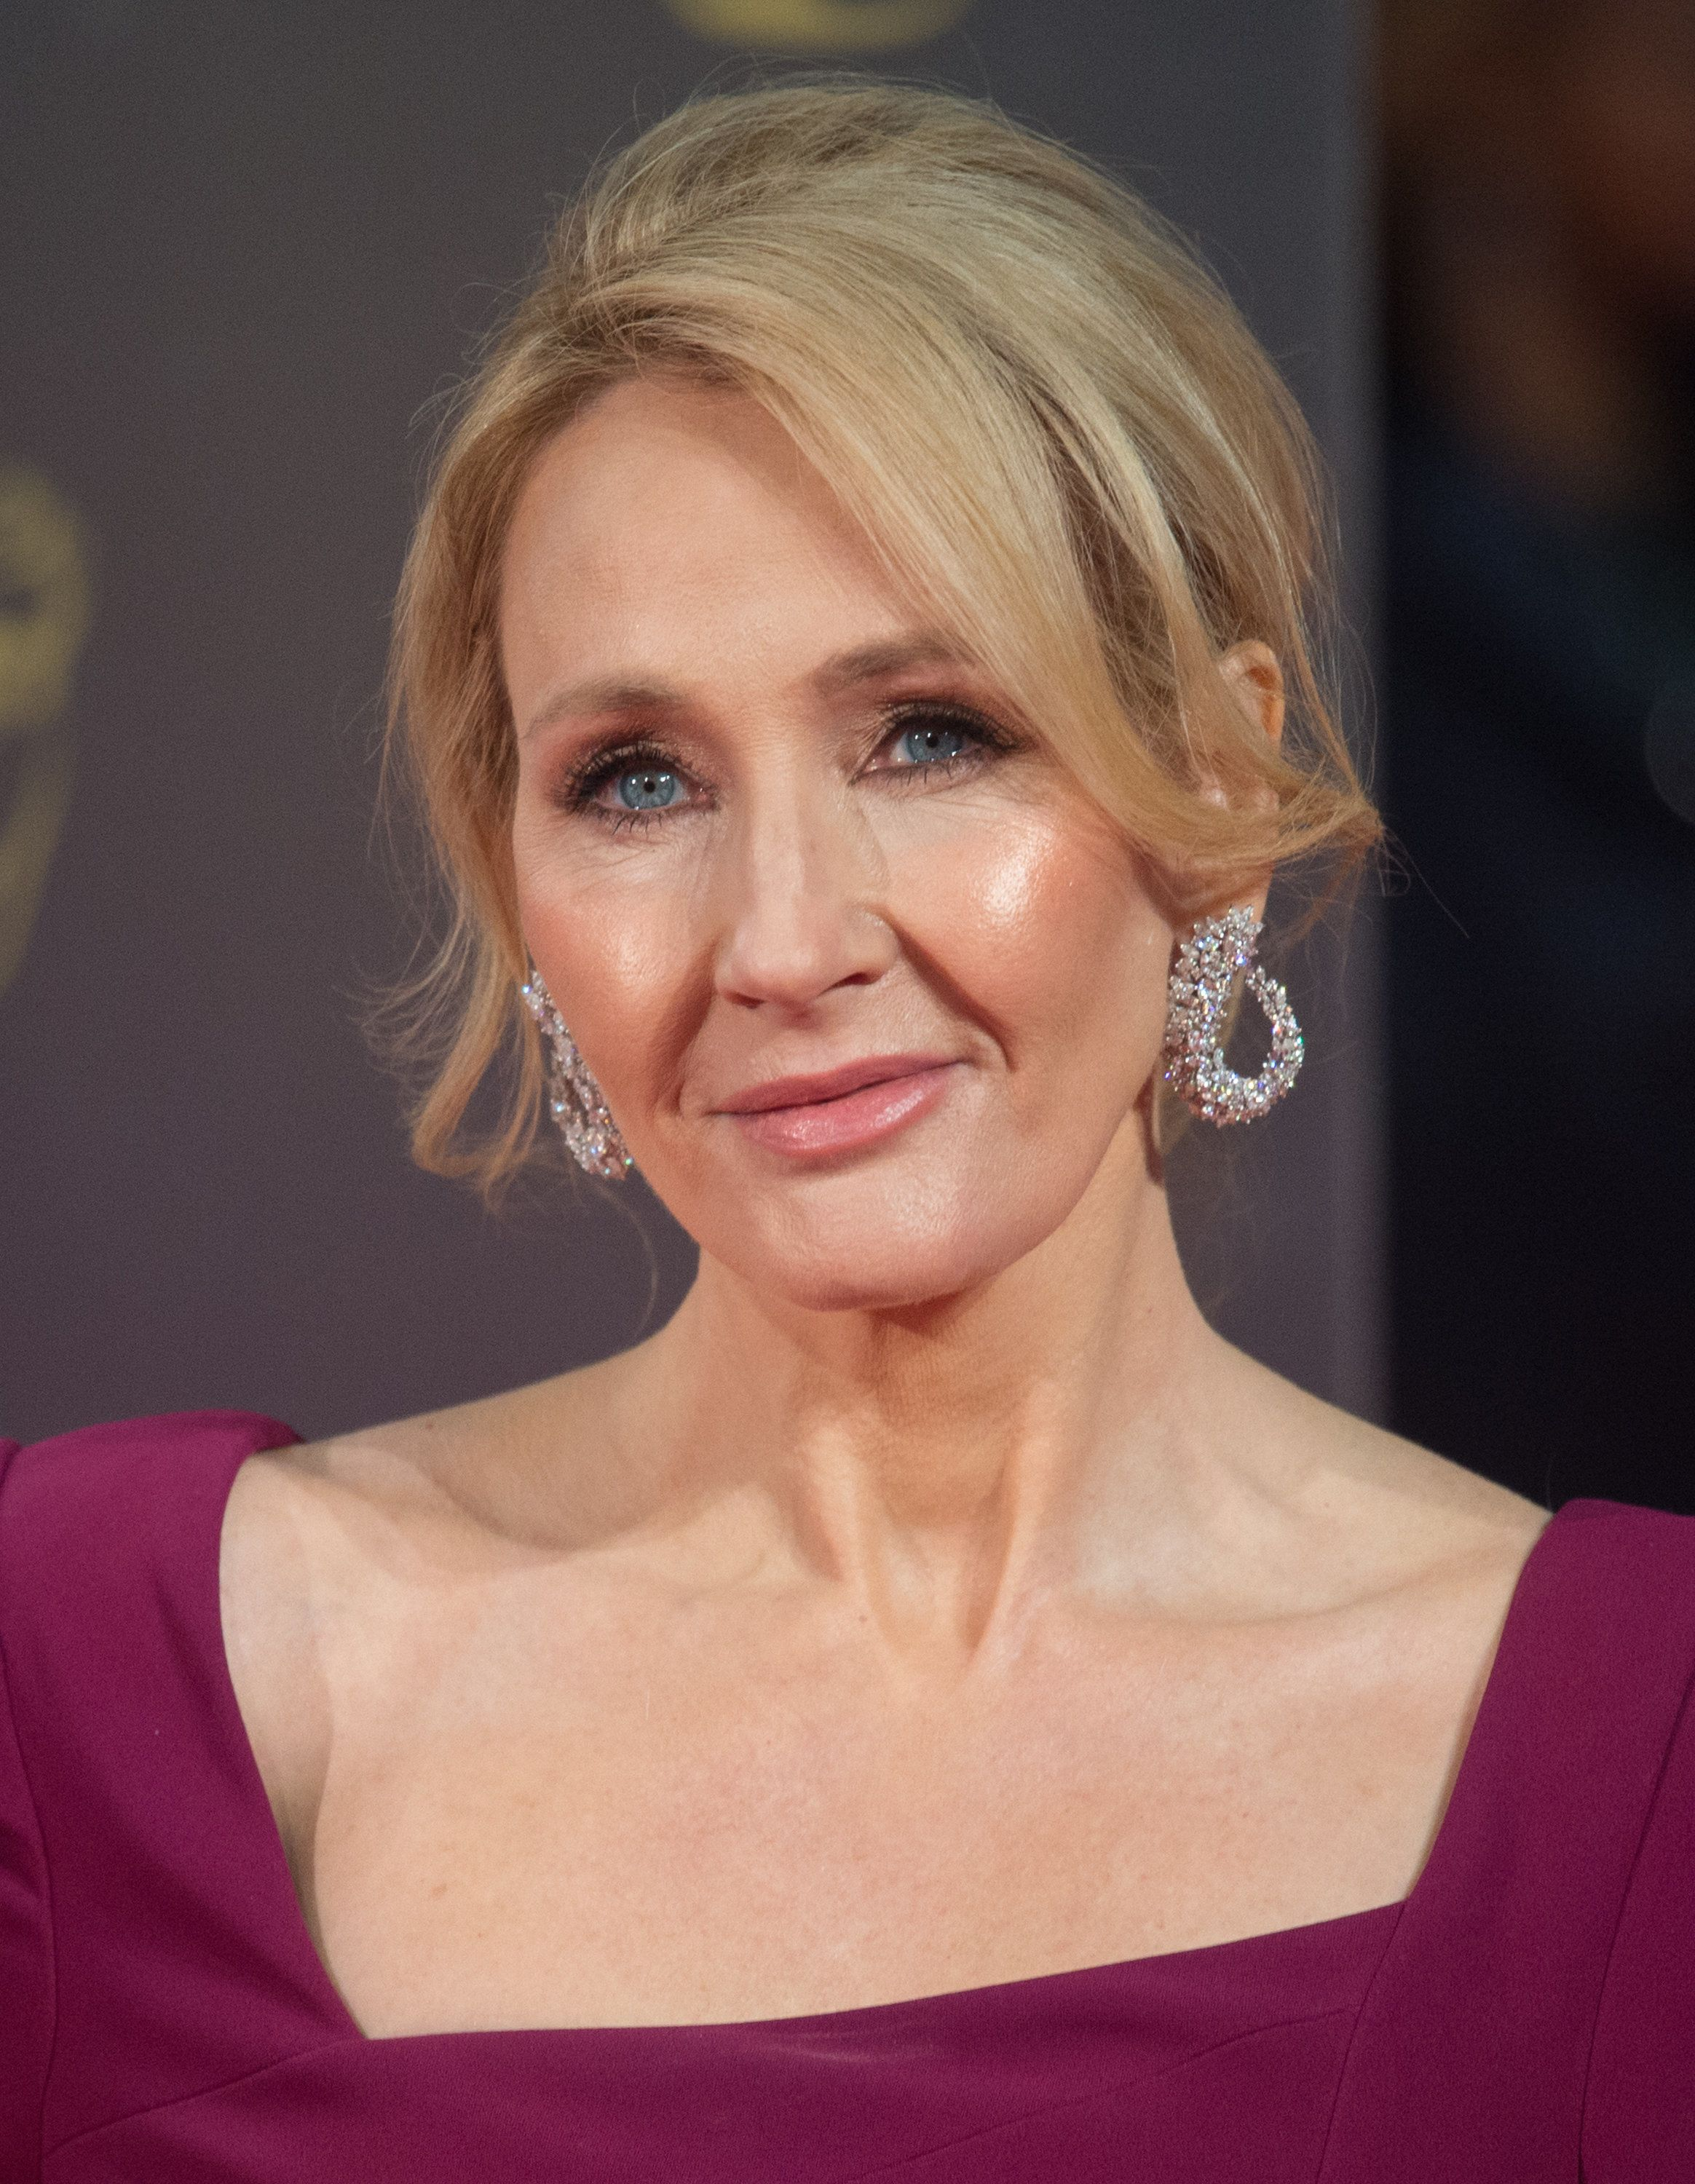 JK Rowling Sparks Outpouring Of Emotional Stories From EU Workers Over 'Pain' Of